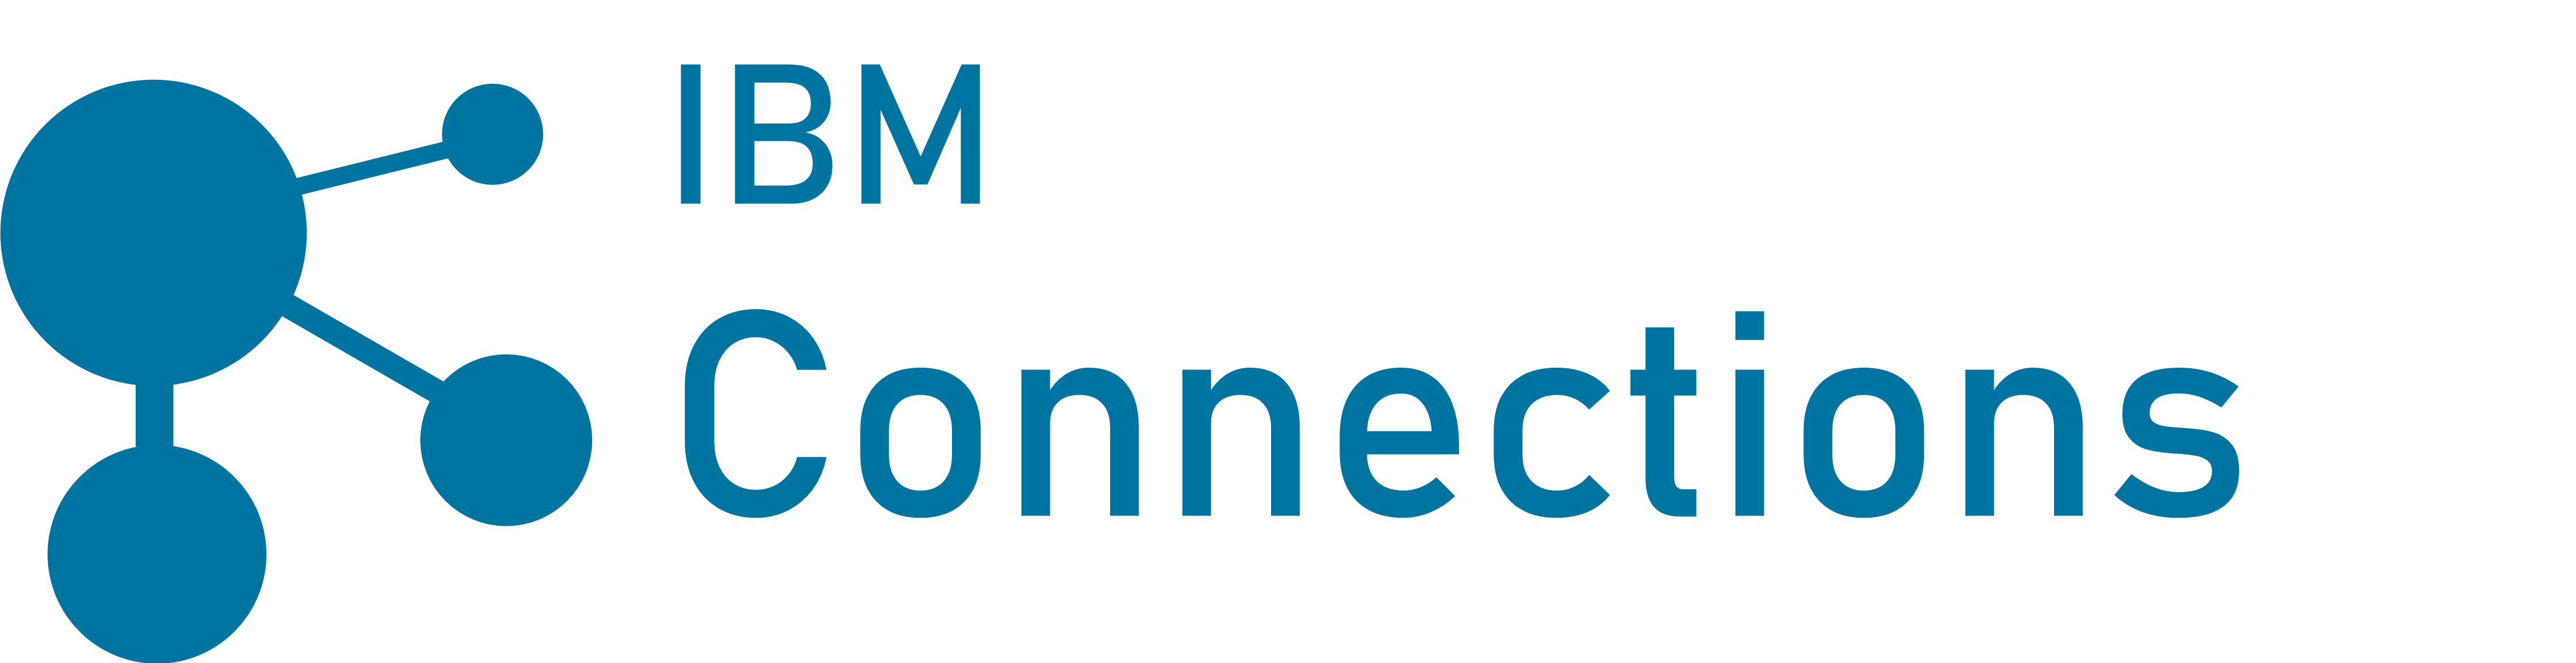 IBM Connection